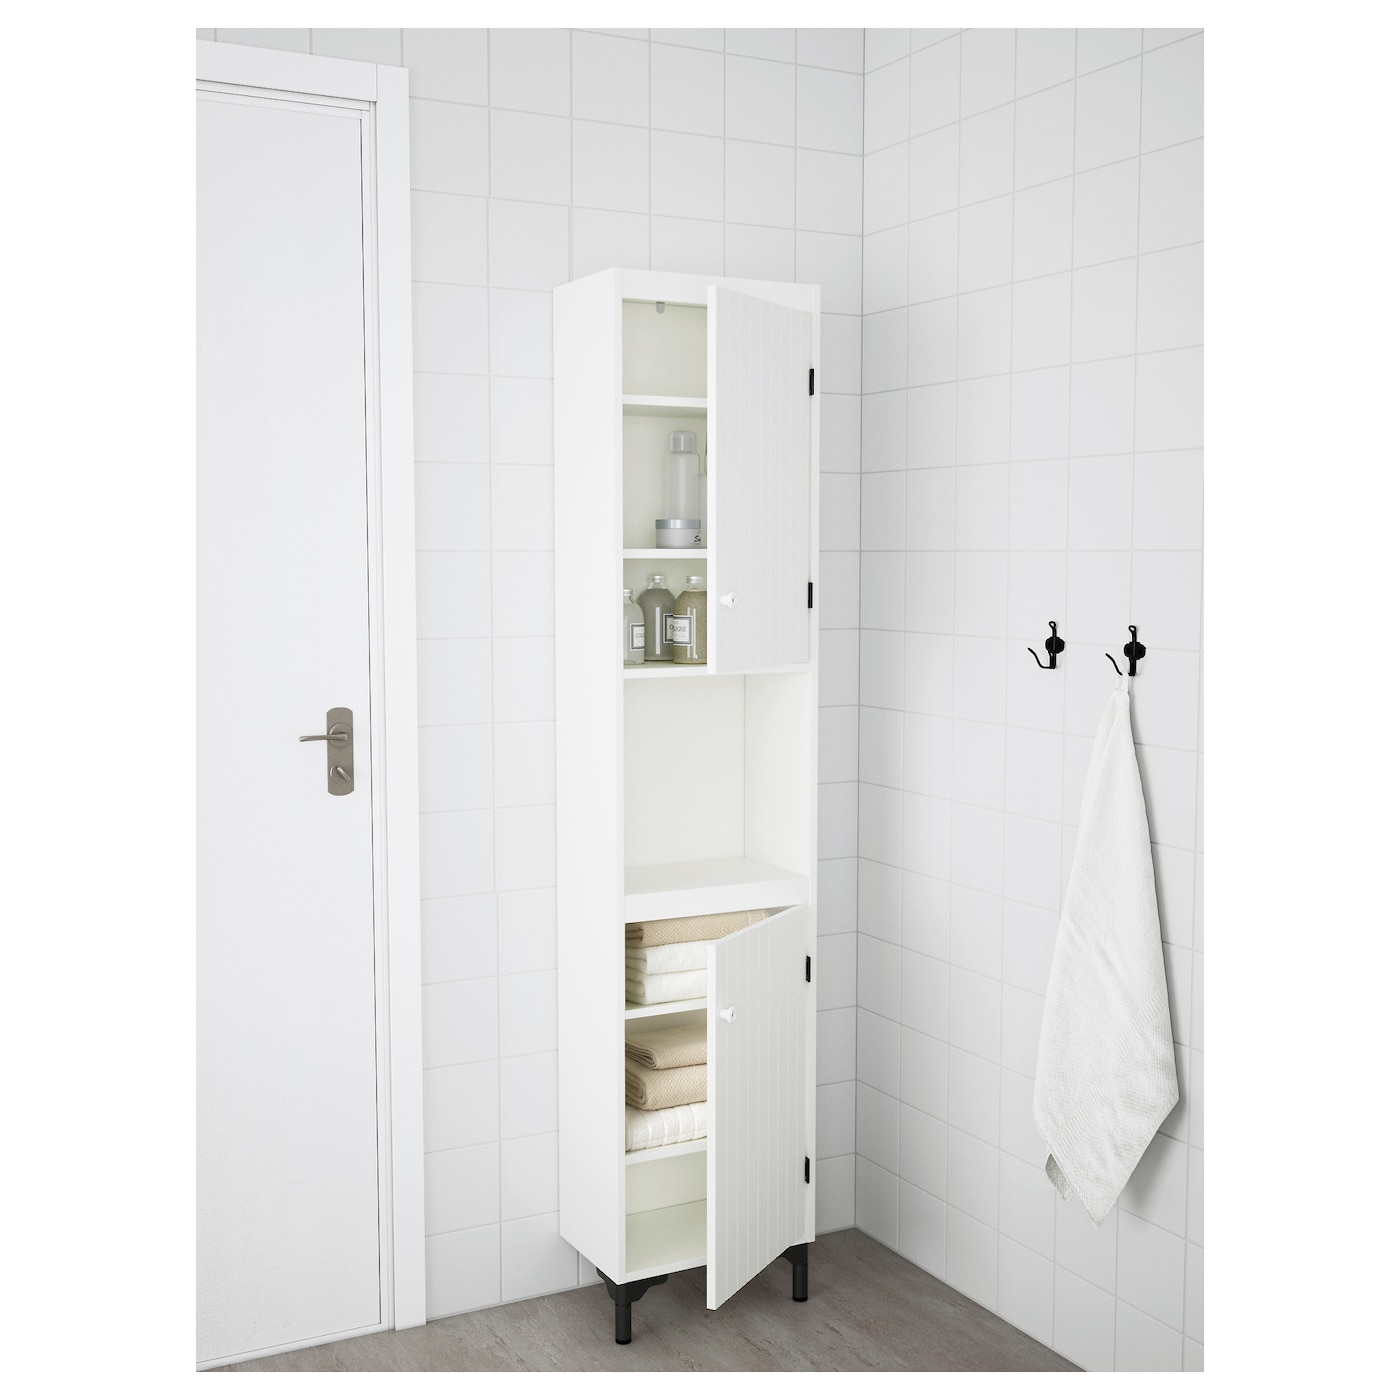 IKEA SILVERÅN high cabinet with 2 doors You can mount the door to open from the right or left.